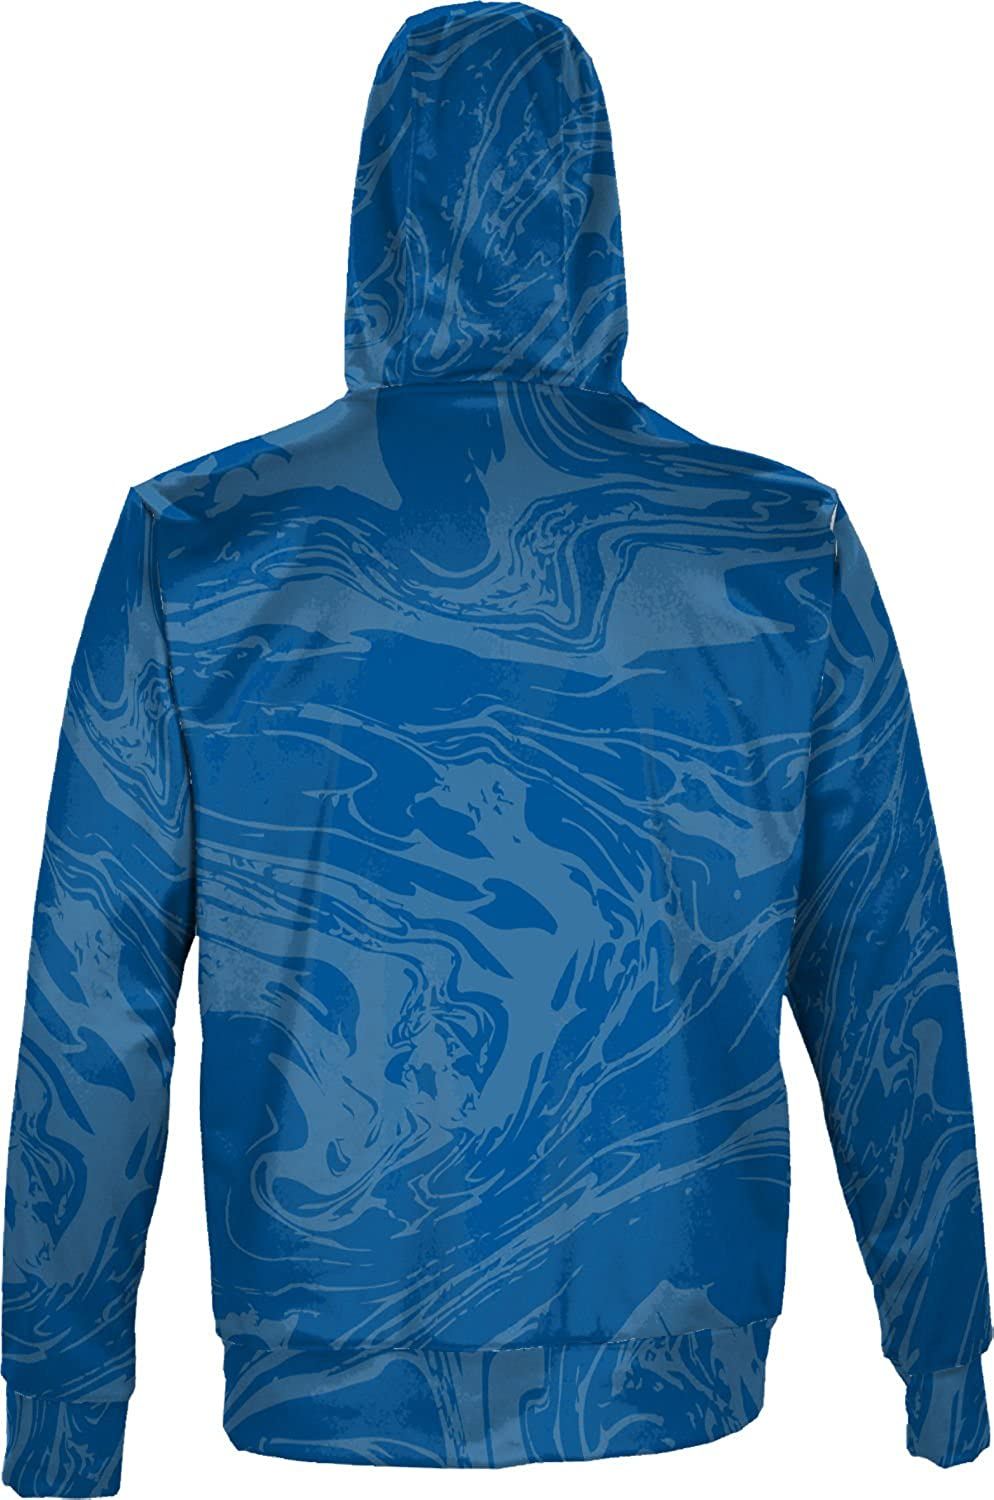 ProSphere Fairleigh Dickinson University Boys Full Zip Hoodie Ripple